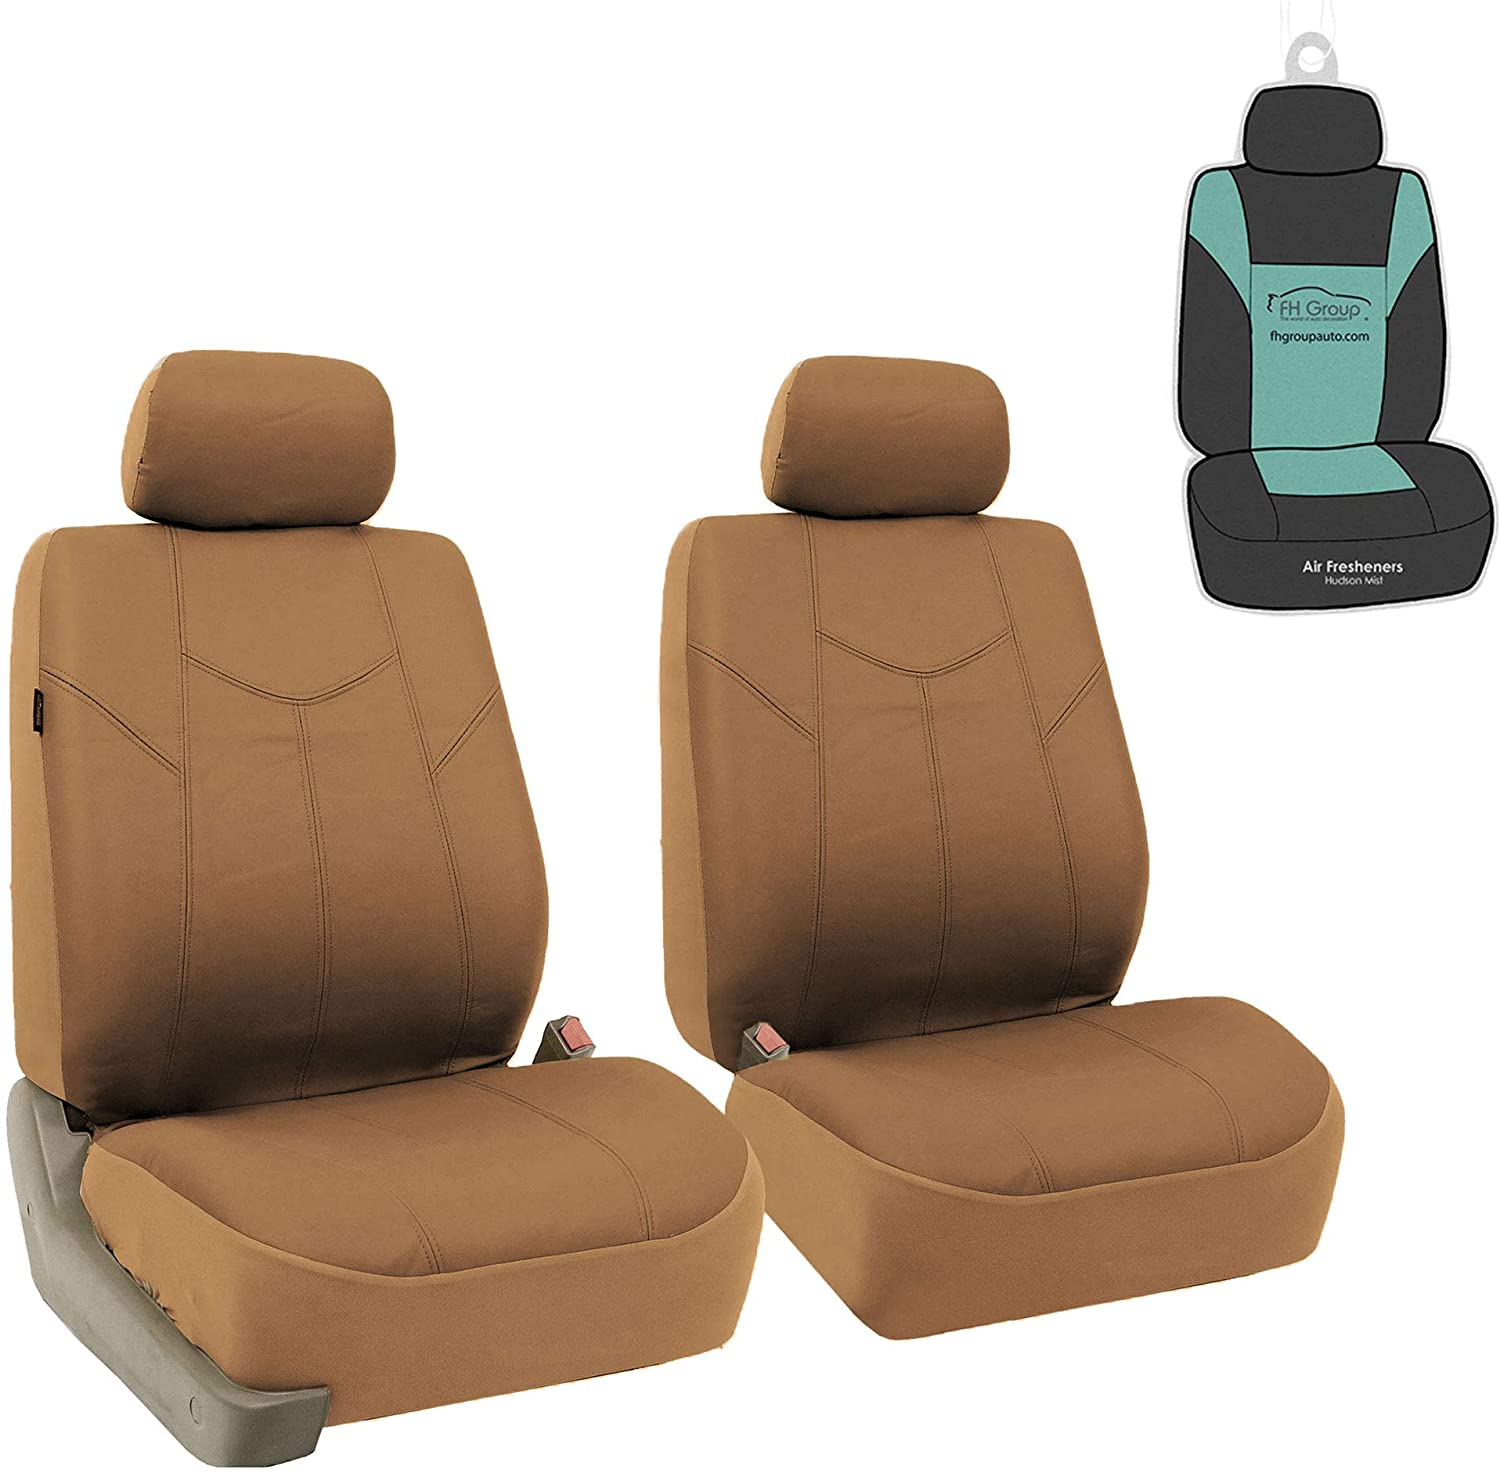 FH Group PU009115 PU Leather Rome Seat Covers (Tan) Front Set with Gift - Universal Fit